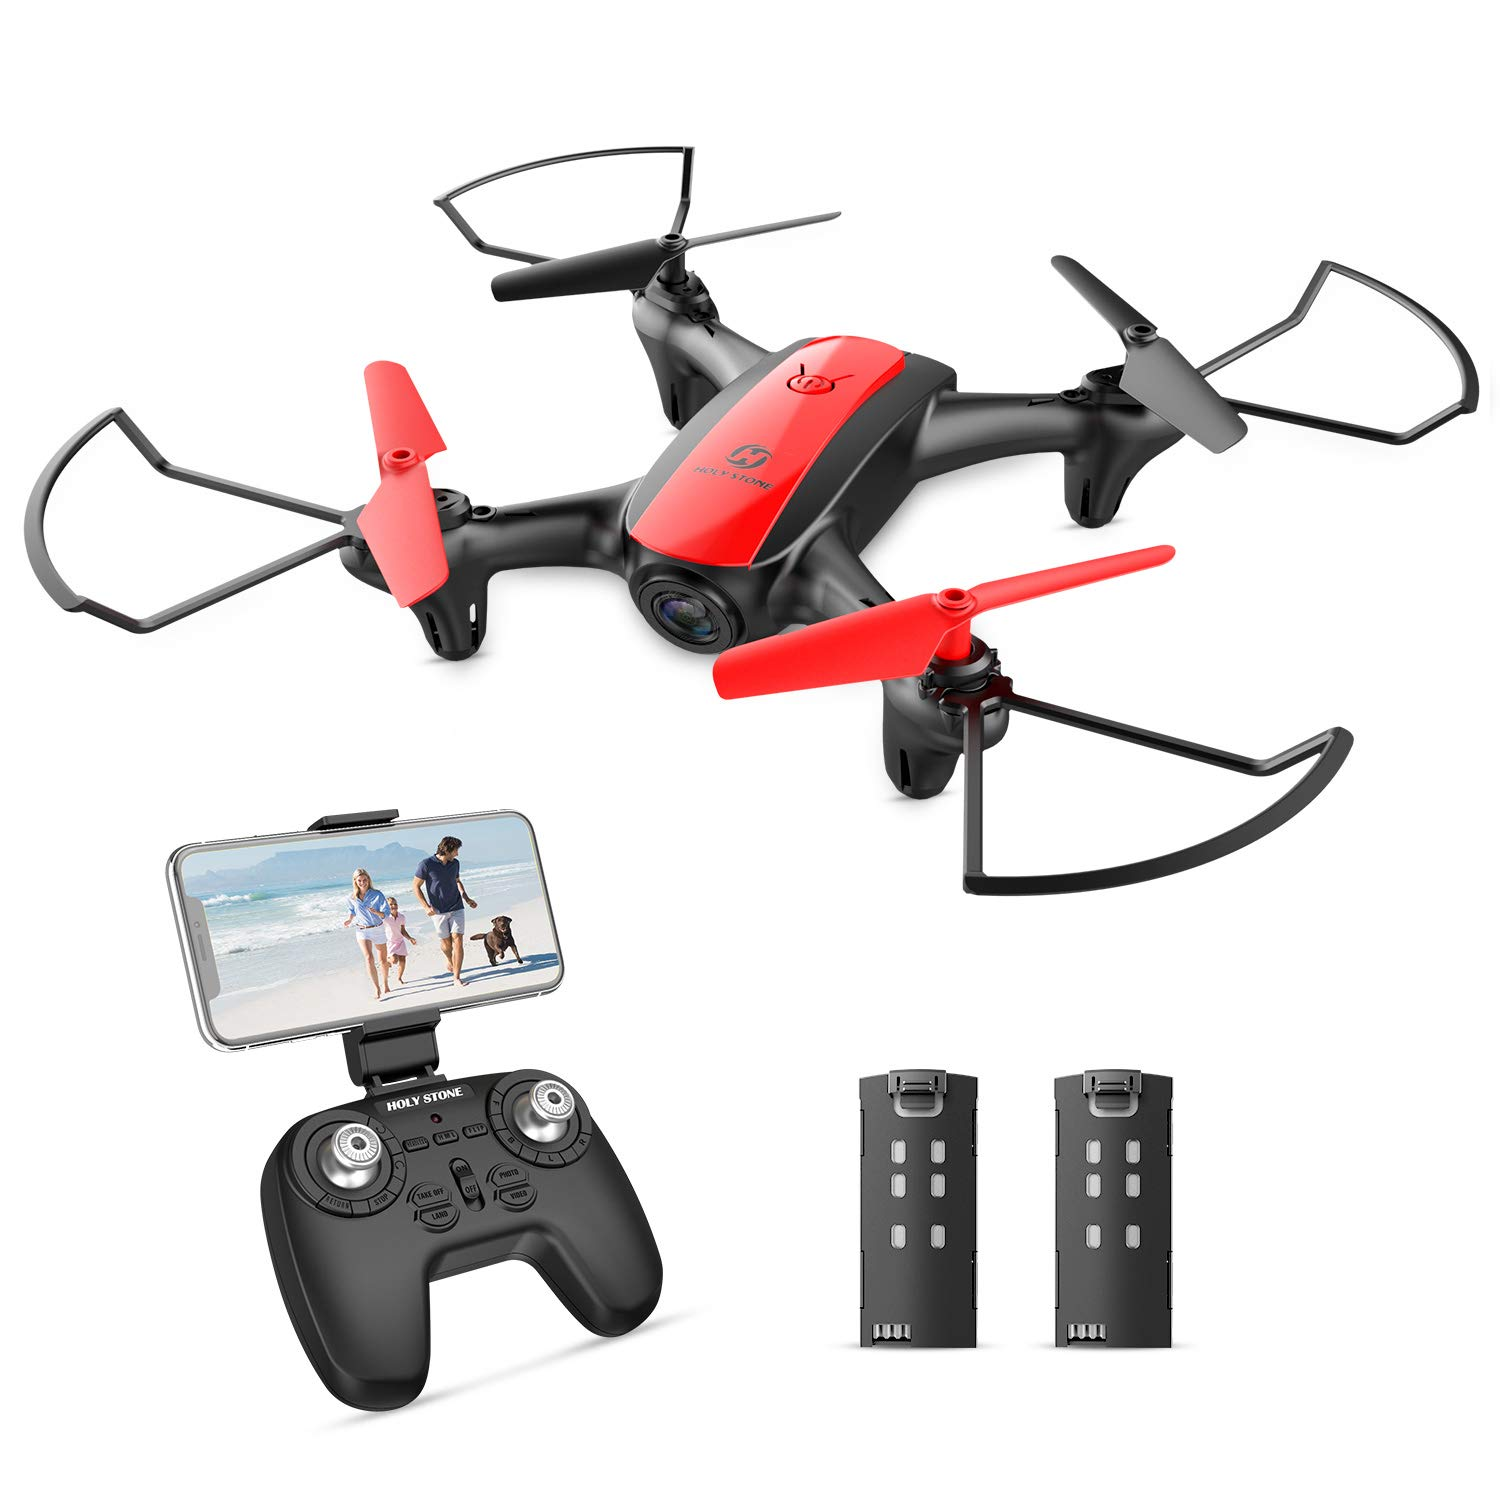 Holy Stone HS370 FPV Drone with Camera for Kids and Adults 720P HD WiFi Transmission, RC Quadcopter for Beginners with Altitude Hold, One Key Start/Land, Draw Path, 3D Flips 2 Modular Batteries by Holy Stone